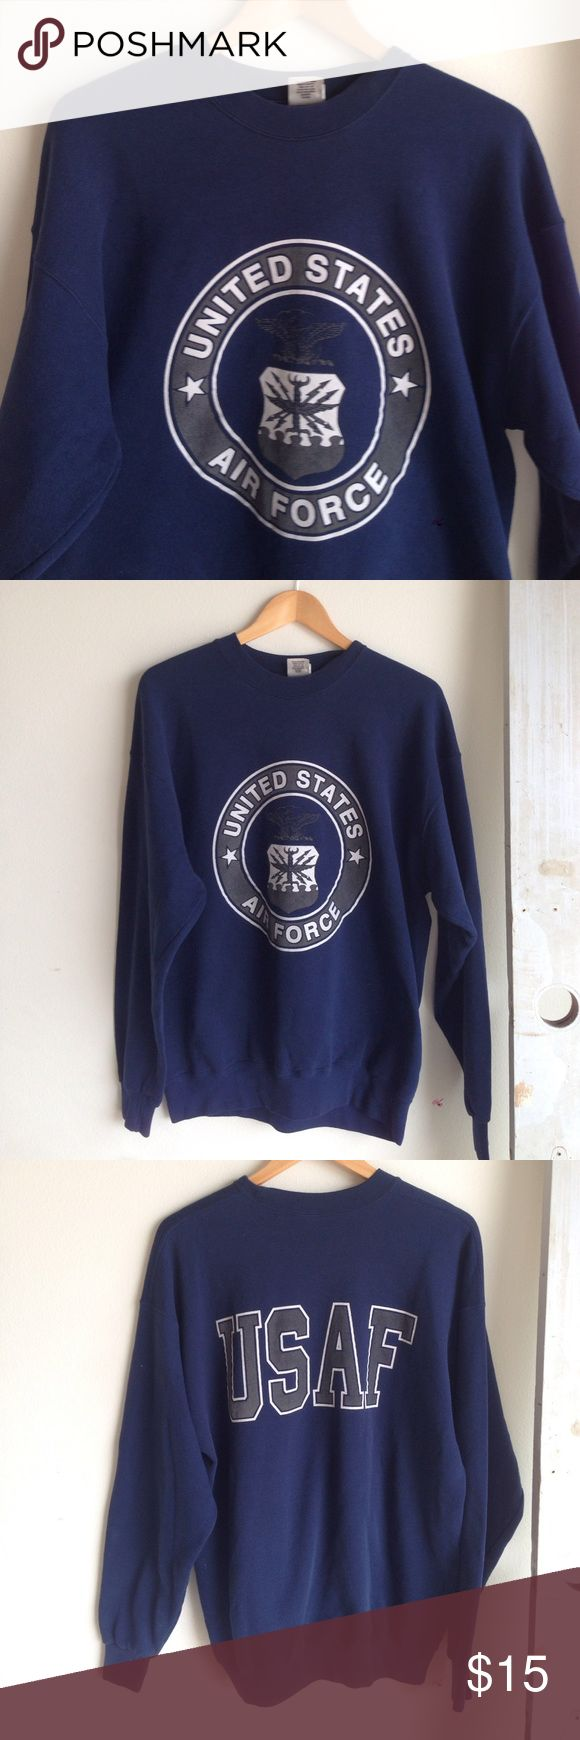 Vintage Air Force sweatshirt Like new condition. Vintage United States Air Force sweatshirt. Navy blue. Very soft and comfortable. Size XL. A good gift or a really cute oversized sweatshirt. vintage Jackets & Coats